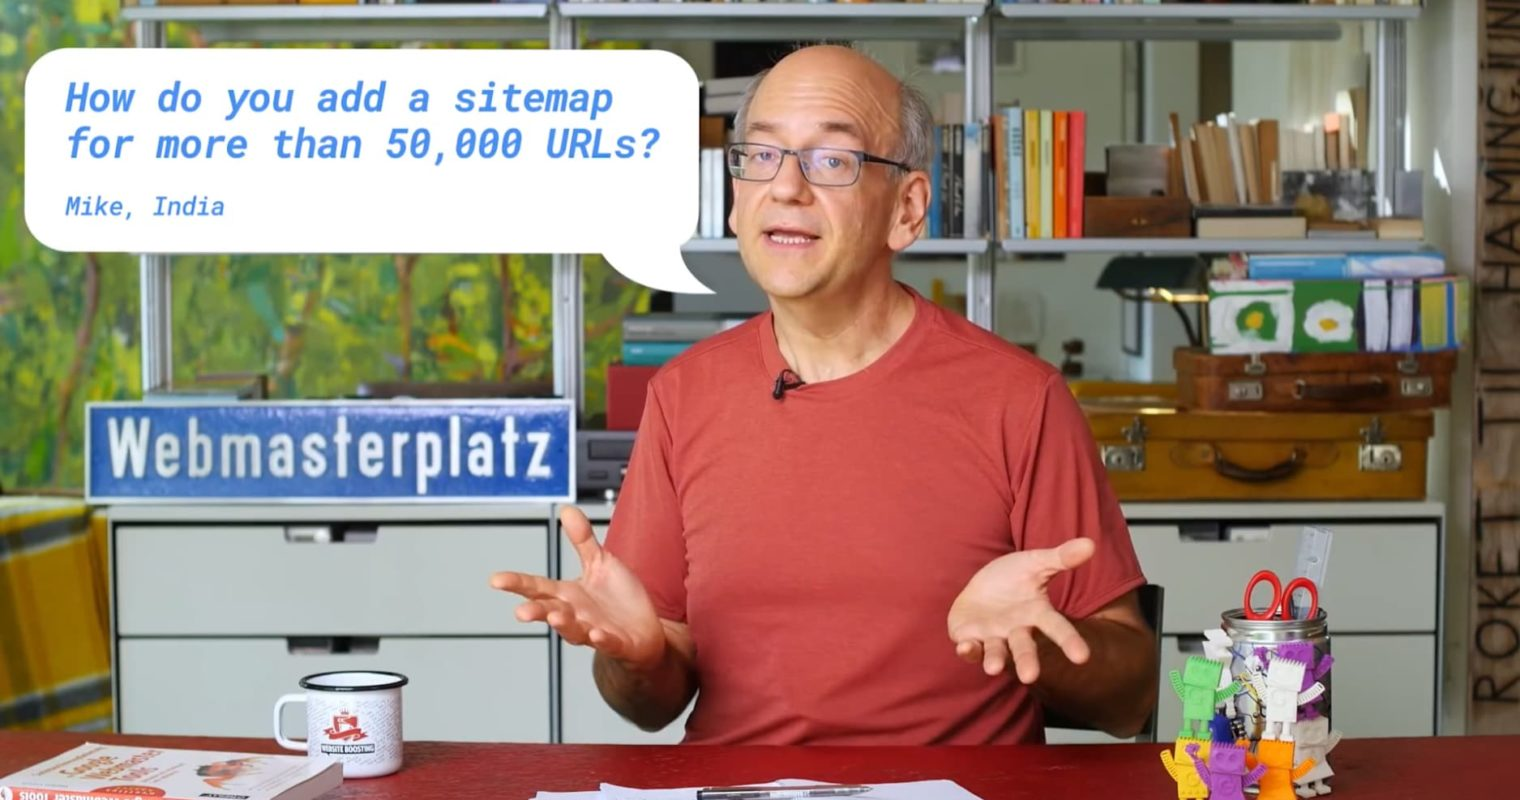 Google's John Mueller Answers: How to Add Sitemaps for More Than 50,000 URLs